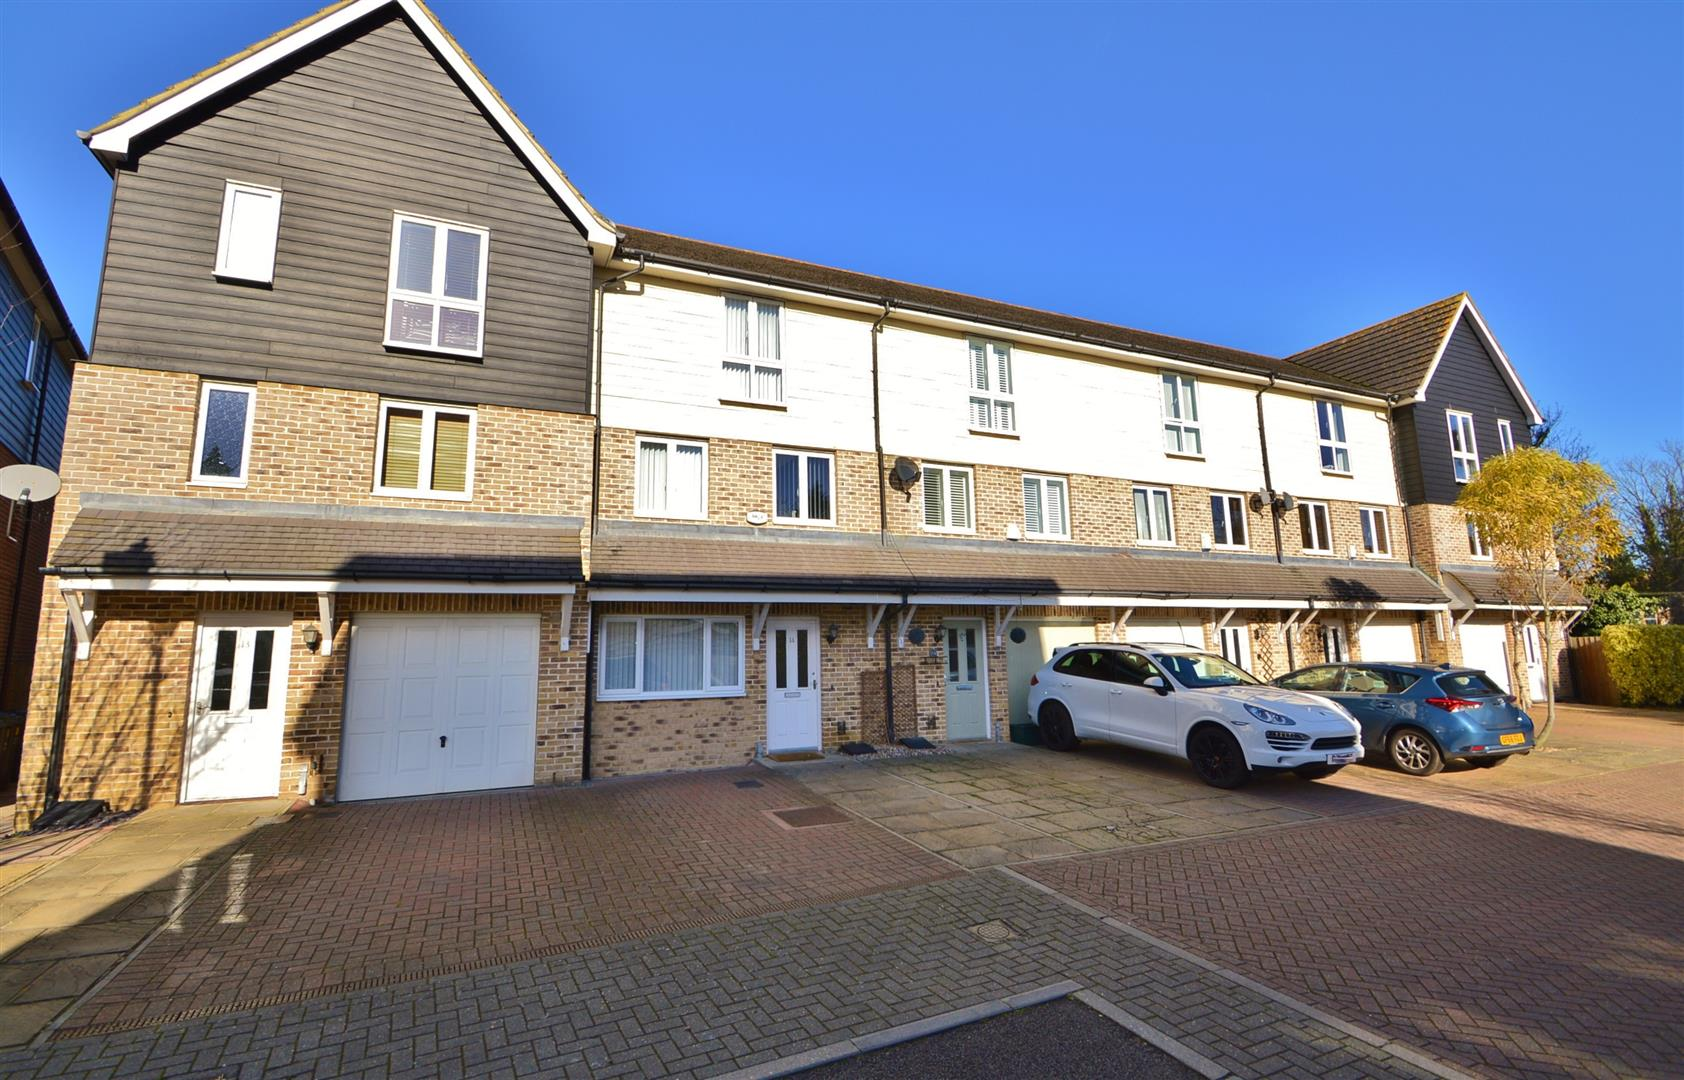 3 Bedrooms Terraced House for sale in Bridge Place, Aylesford